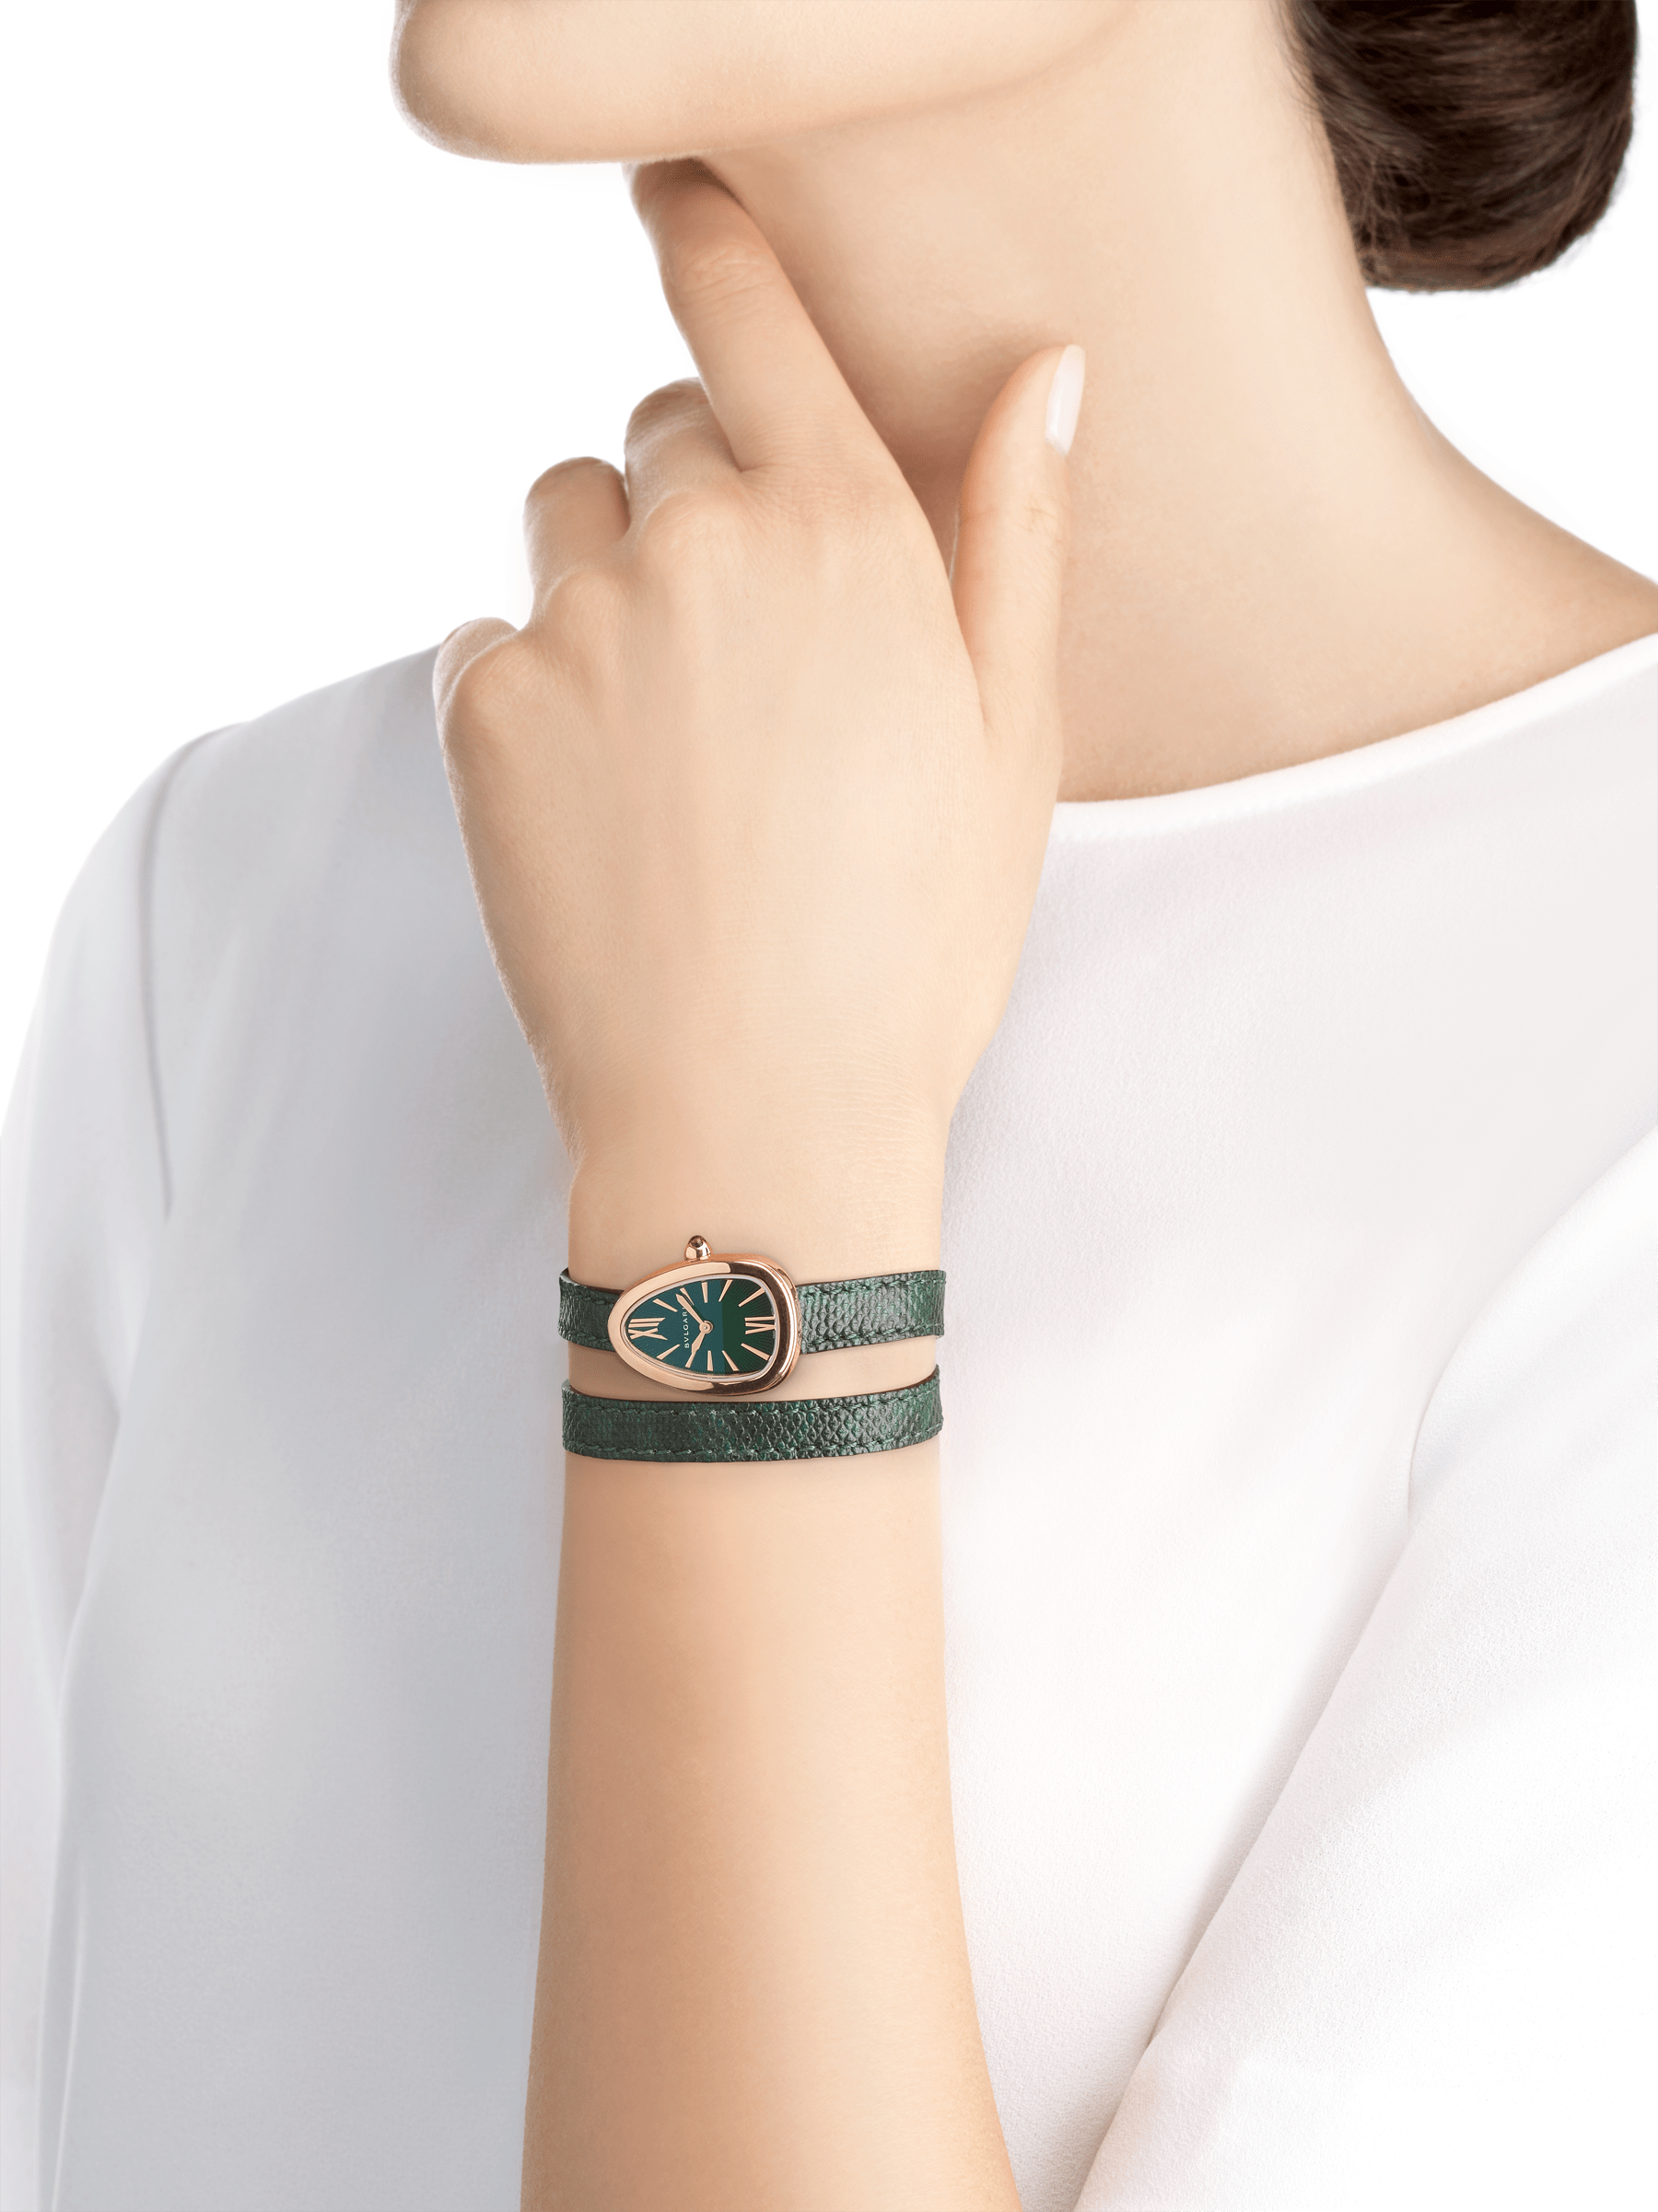 Serpenti watch with 18 kt rose gold case, green lacquered dial and interchangeable double spiral bracelet in green karung leather. 102726 image 4